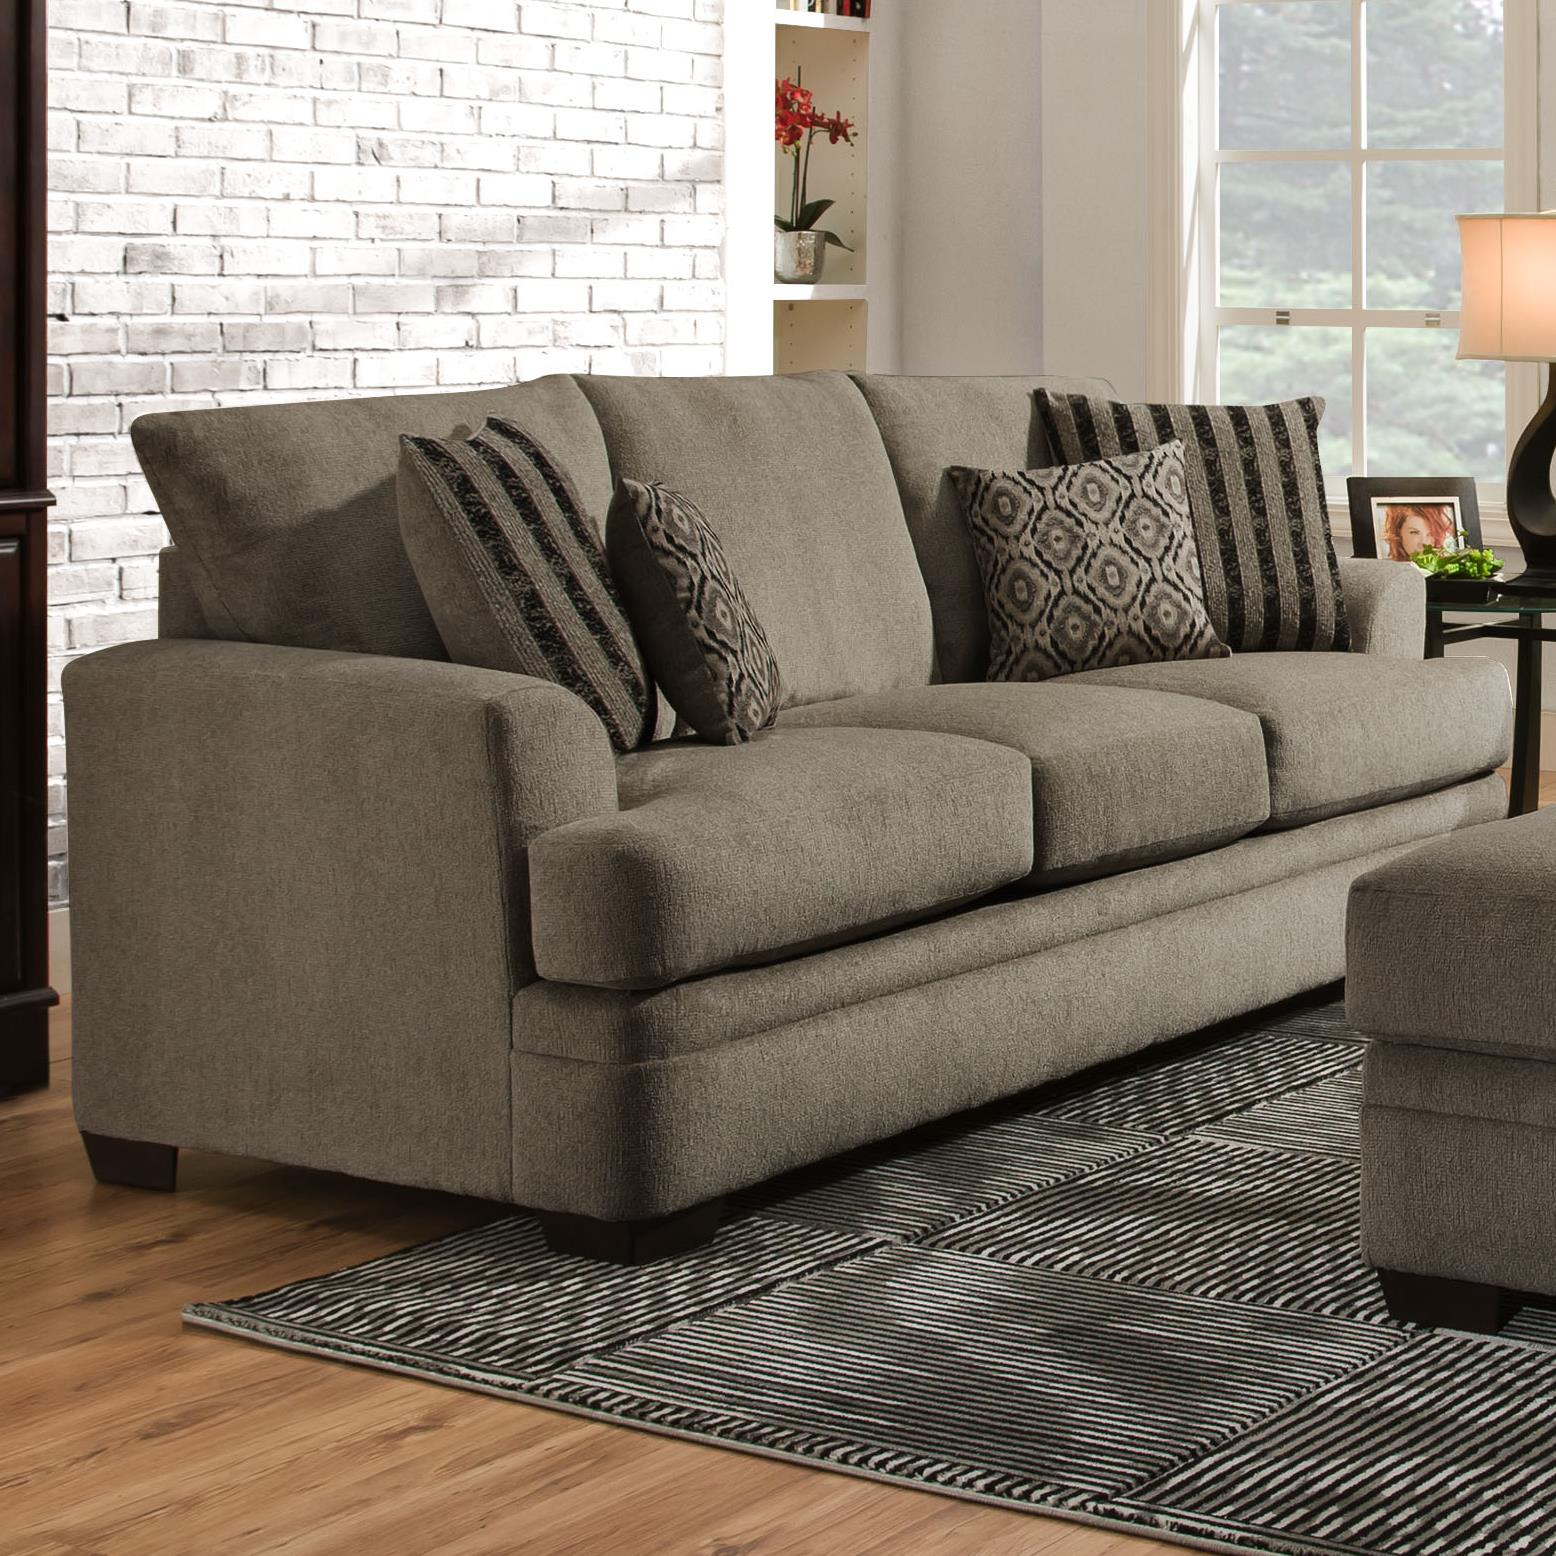 American Furniture 3650 Casual Sofa with 3 Seats Royal Furniture